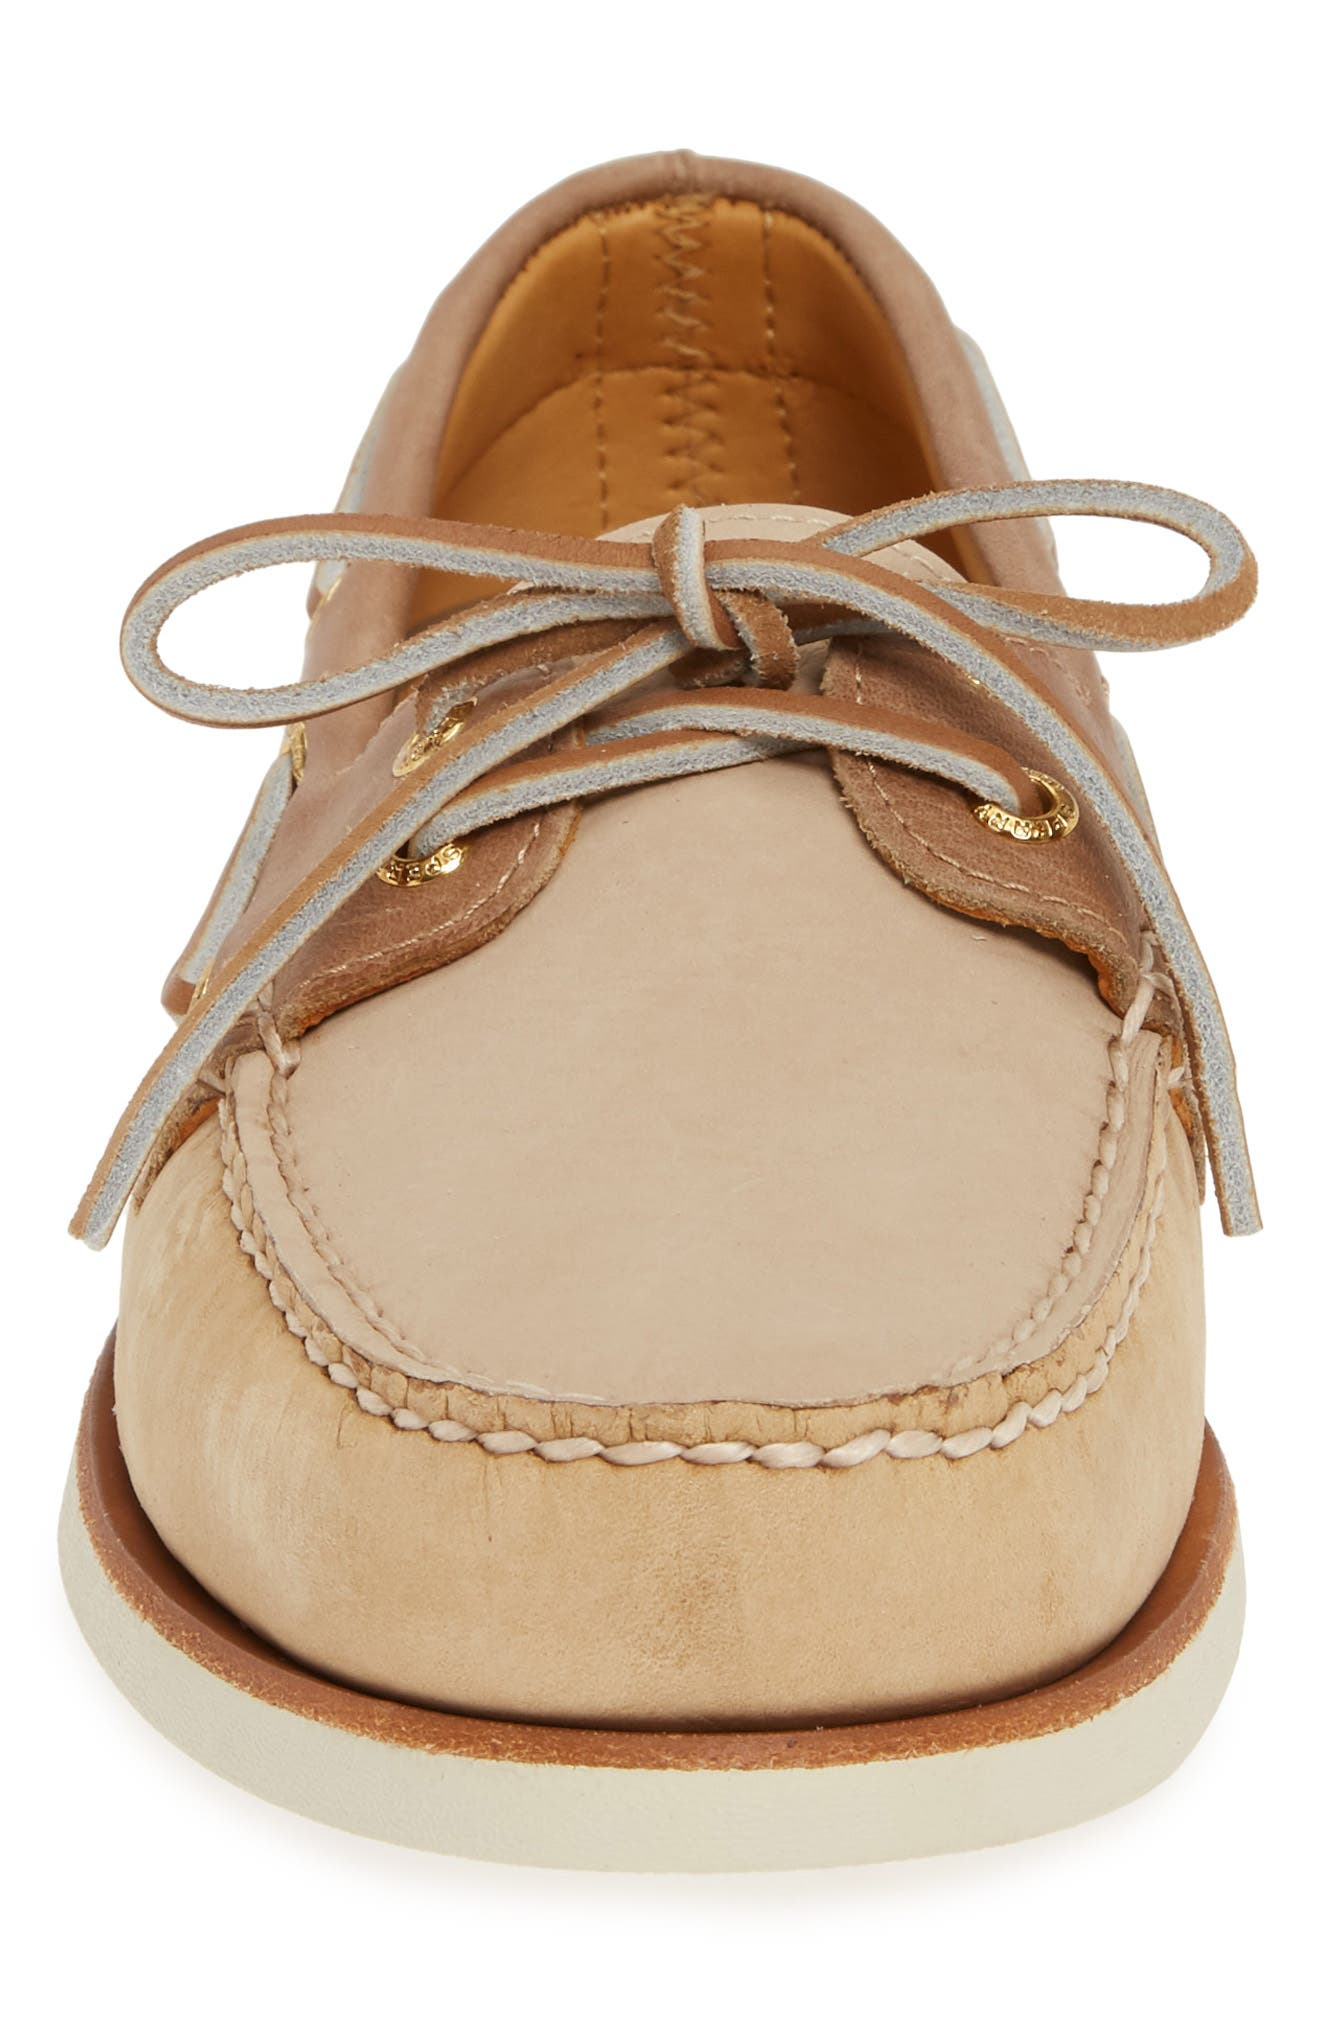 SPERRY, Gold Cup Authentic Original Boat Shoe, Alternate thumbnail 4, color, TAN/ BROWN/ CREAM LEATHER